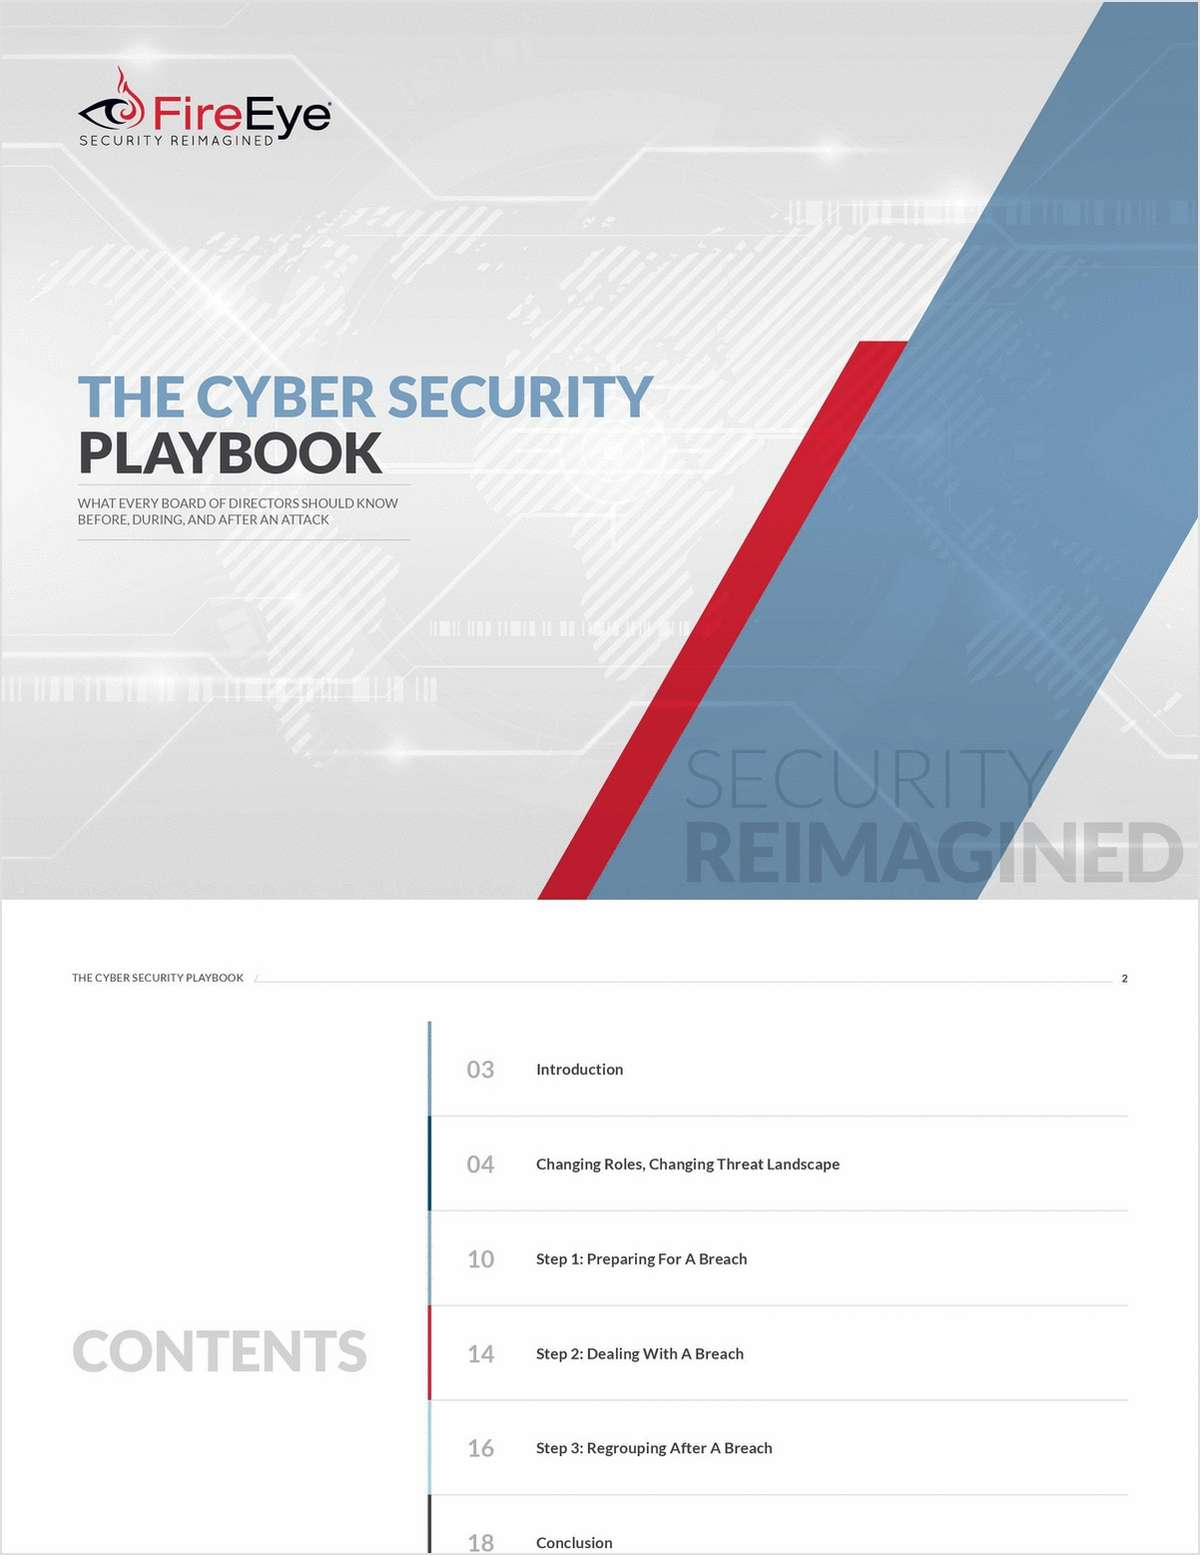 The Cyber Security Playbook: What Every Board Of Directors Should Know Before, During, And After An Attack.